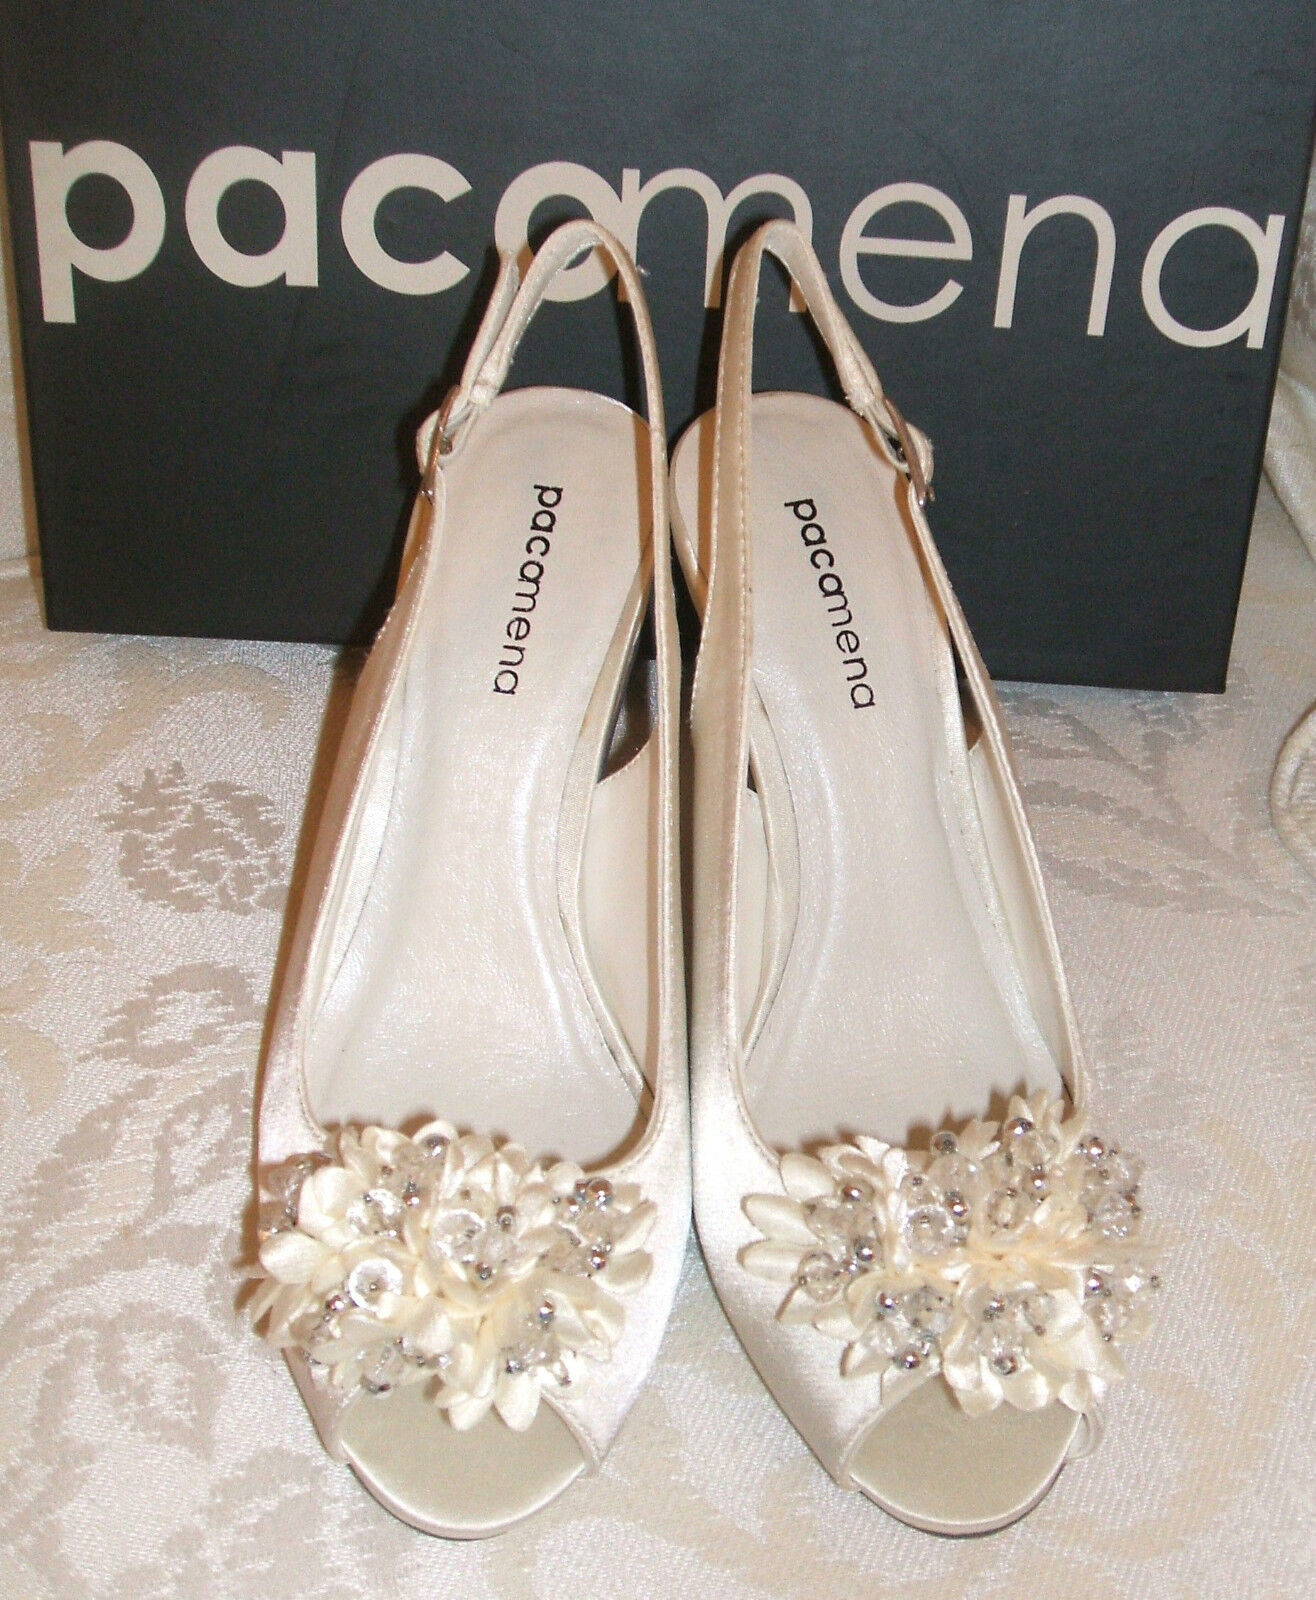 NEW SIZE 3 JEWEL PACO MENA IVORY CORSAGE JEWEL 3 SLINGBACK MID HEEL BRIDAL Schuhe e1bed7